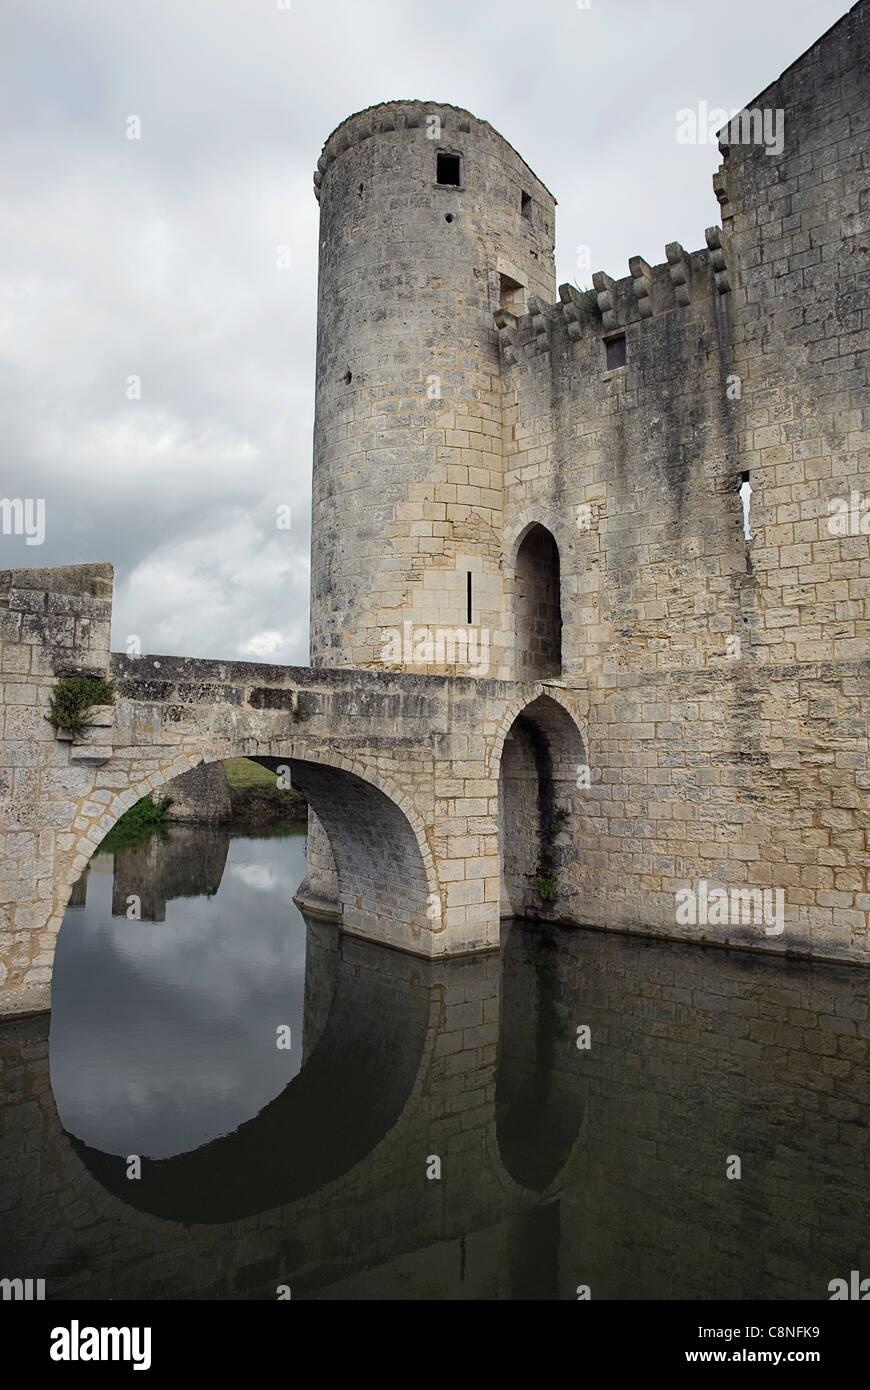 France, Charente-Maritime, St Jean d'Angle, medieval moated castle - Stock Image